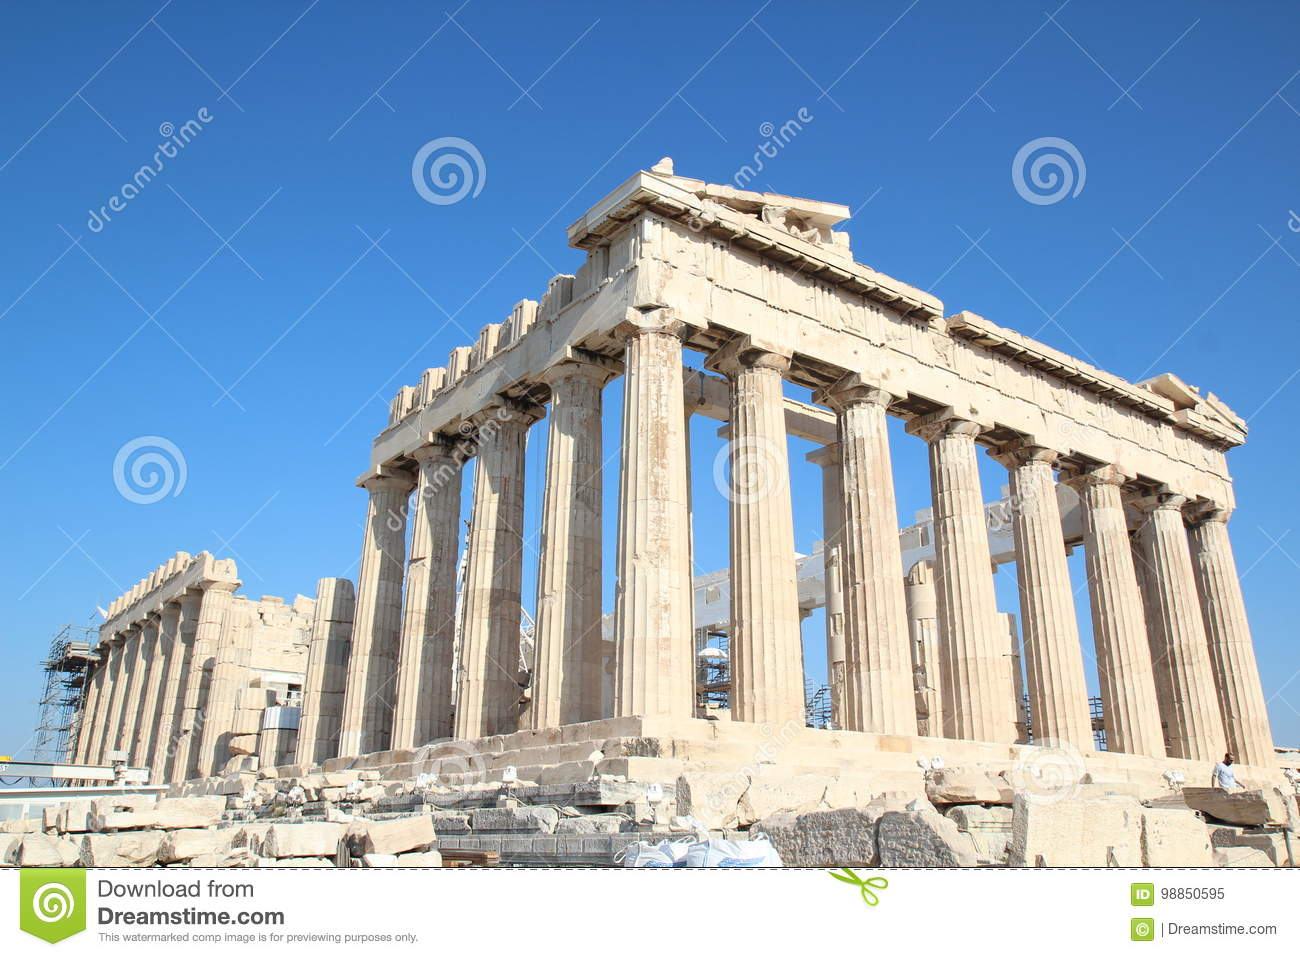 Parthenon, Temple of Athena, Greece, Athens